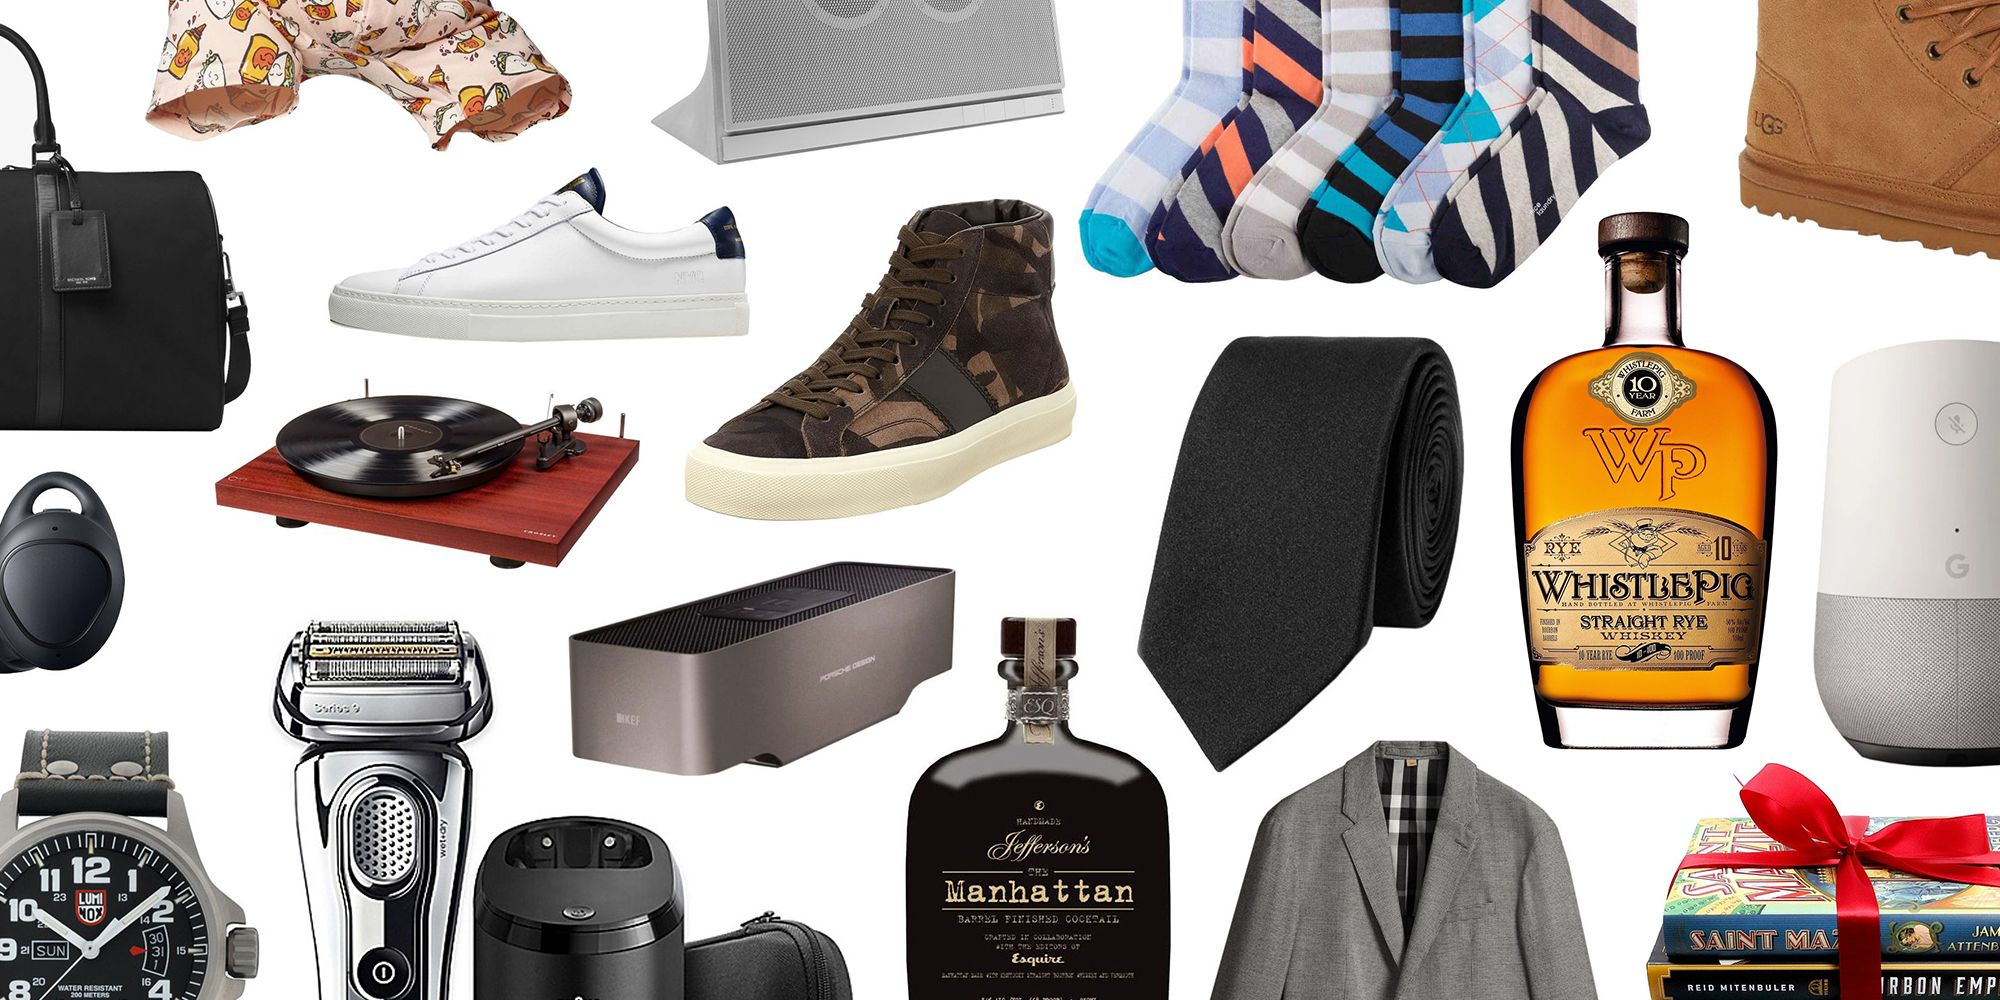 From Clothes And Accessories To Booze And Tech Gear, Hereu0027s What To Get Him.